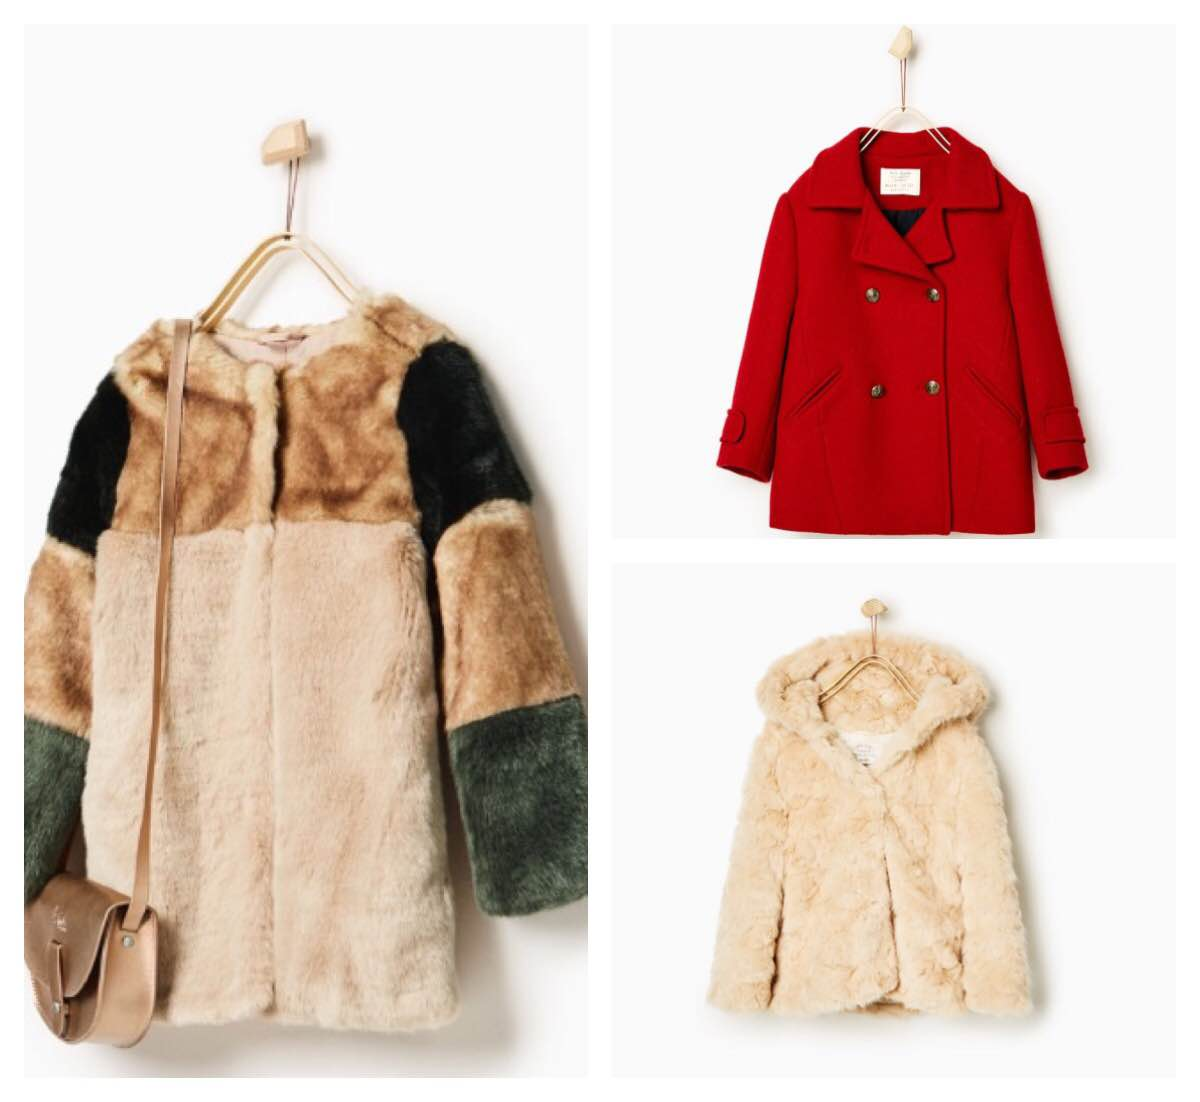 clockwise: Nautical button 3/4 length coat | furry hooded coat | colorful faux fur jacket |  photos and jackets by  Zara